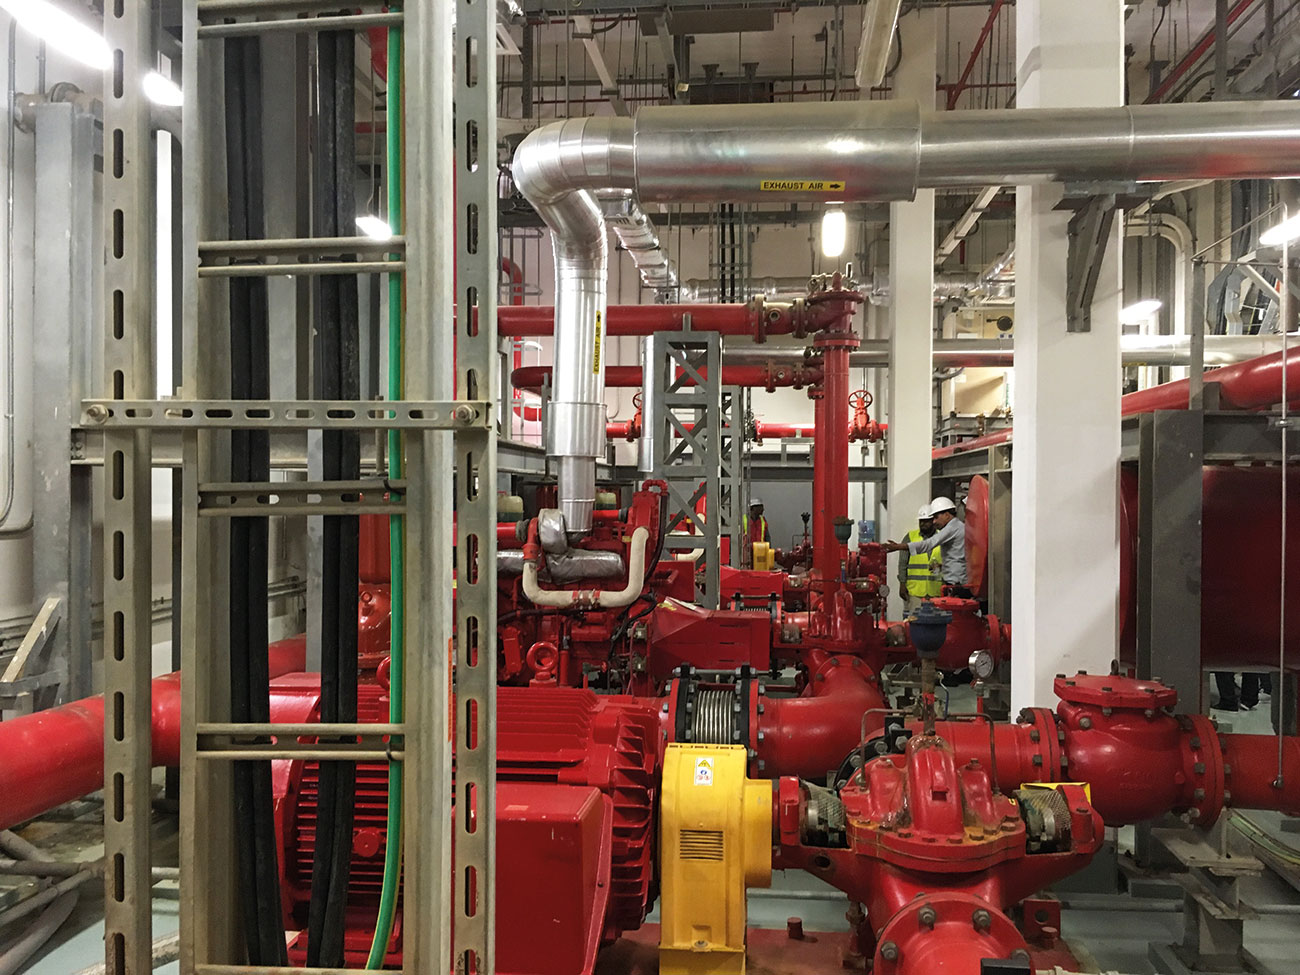 Sprinkler pump house inspections form a key part of ensuring system availability and reliability.